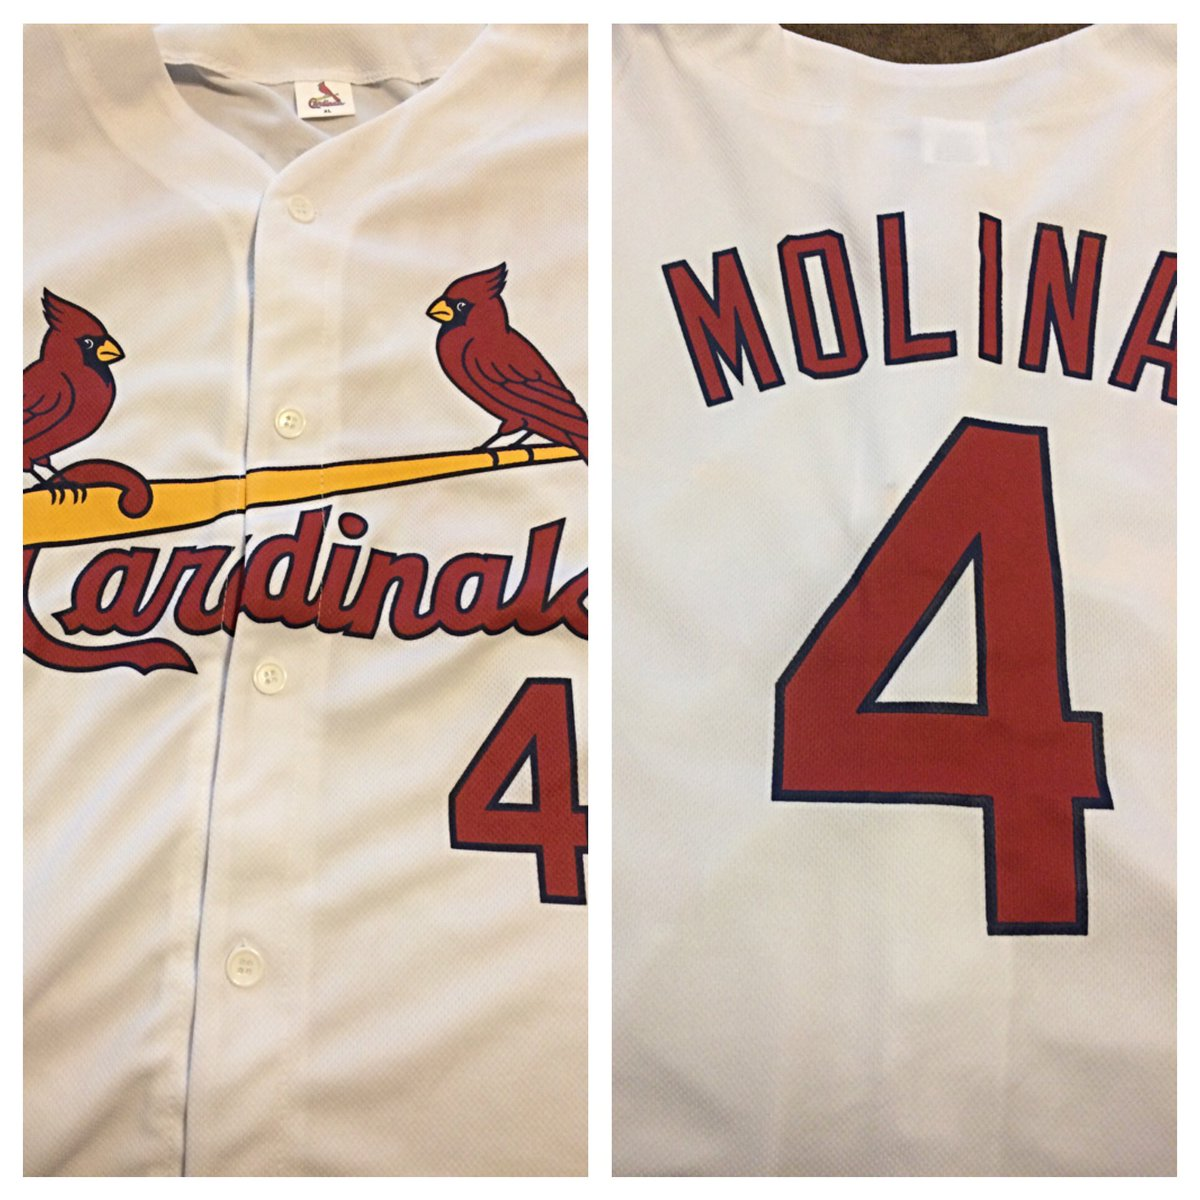 Since @RallyStLouis gave me an awesome jersey, I'll give away this Yadi #STLCards jersey! Just RT to enter! https://t.co/B728KUv3iQ